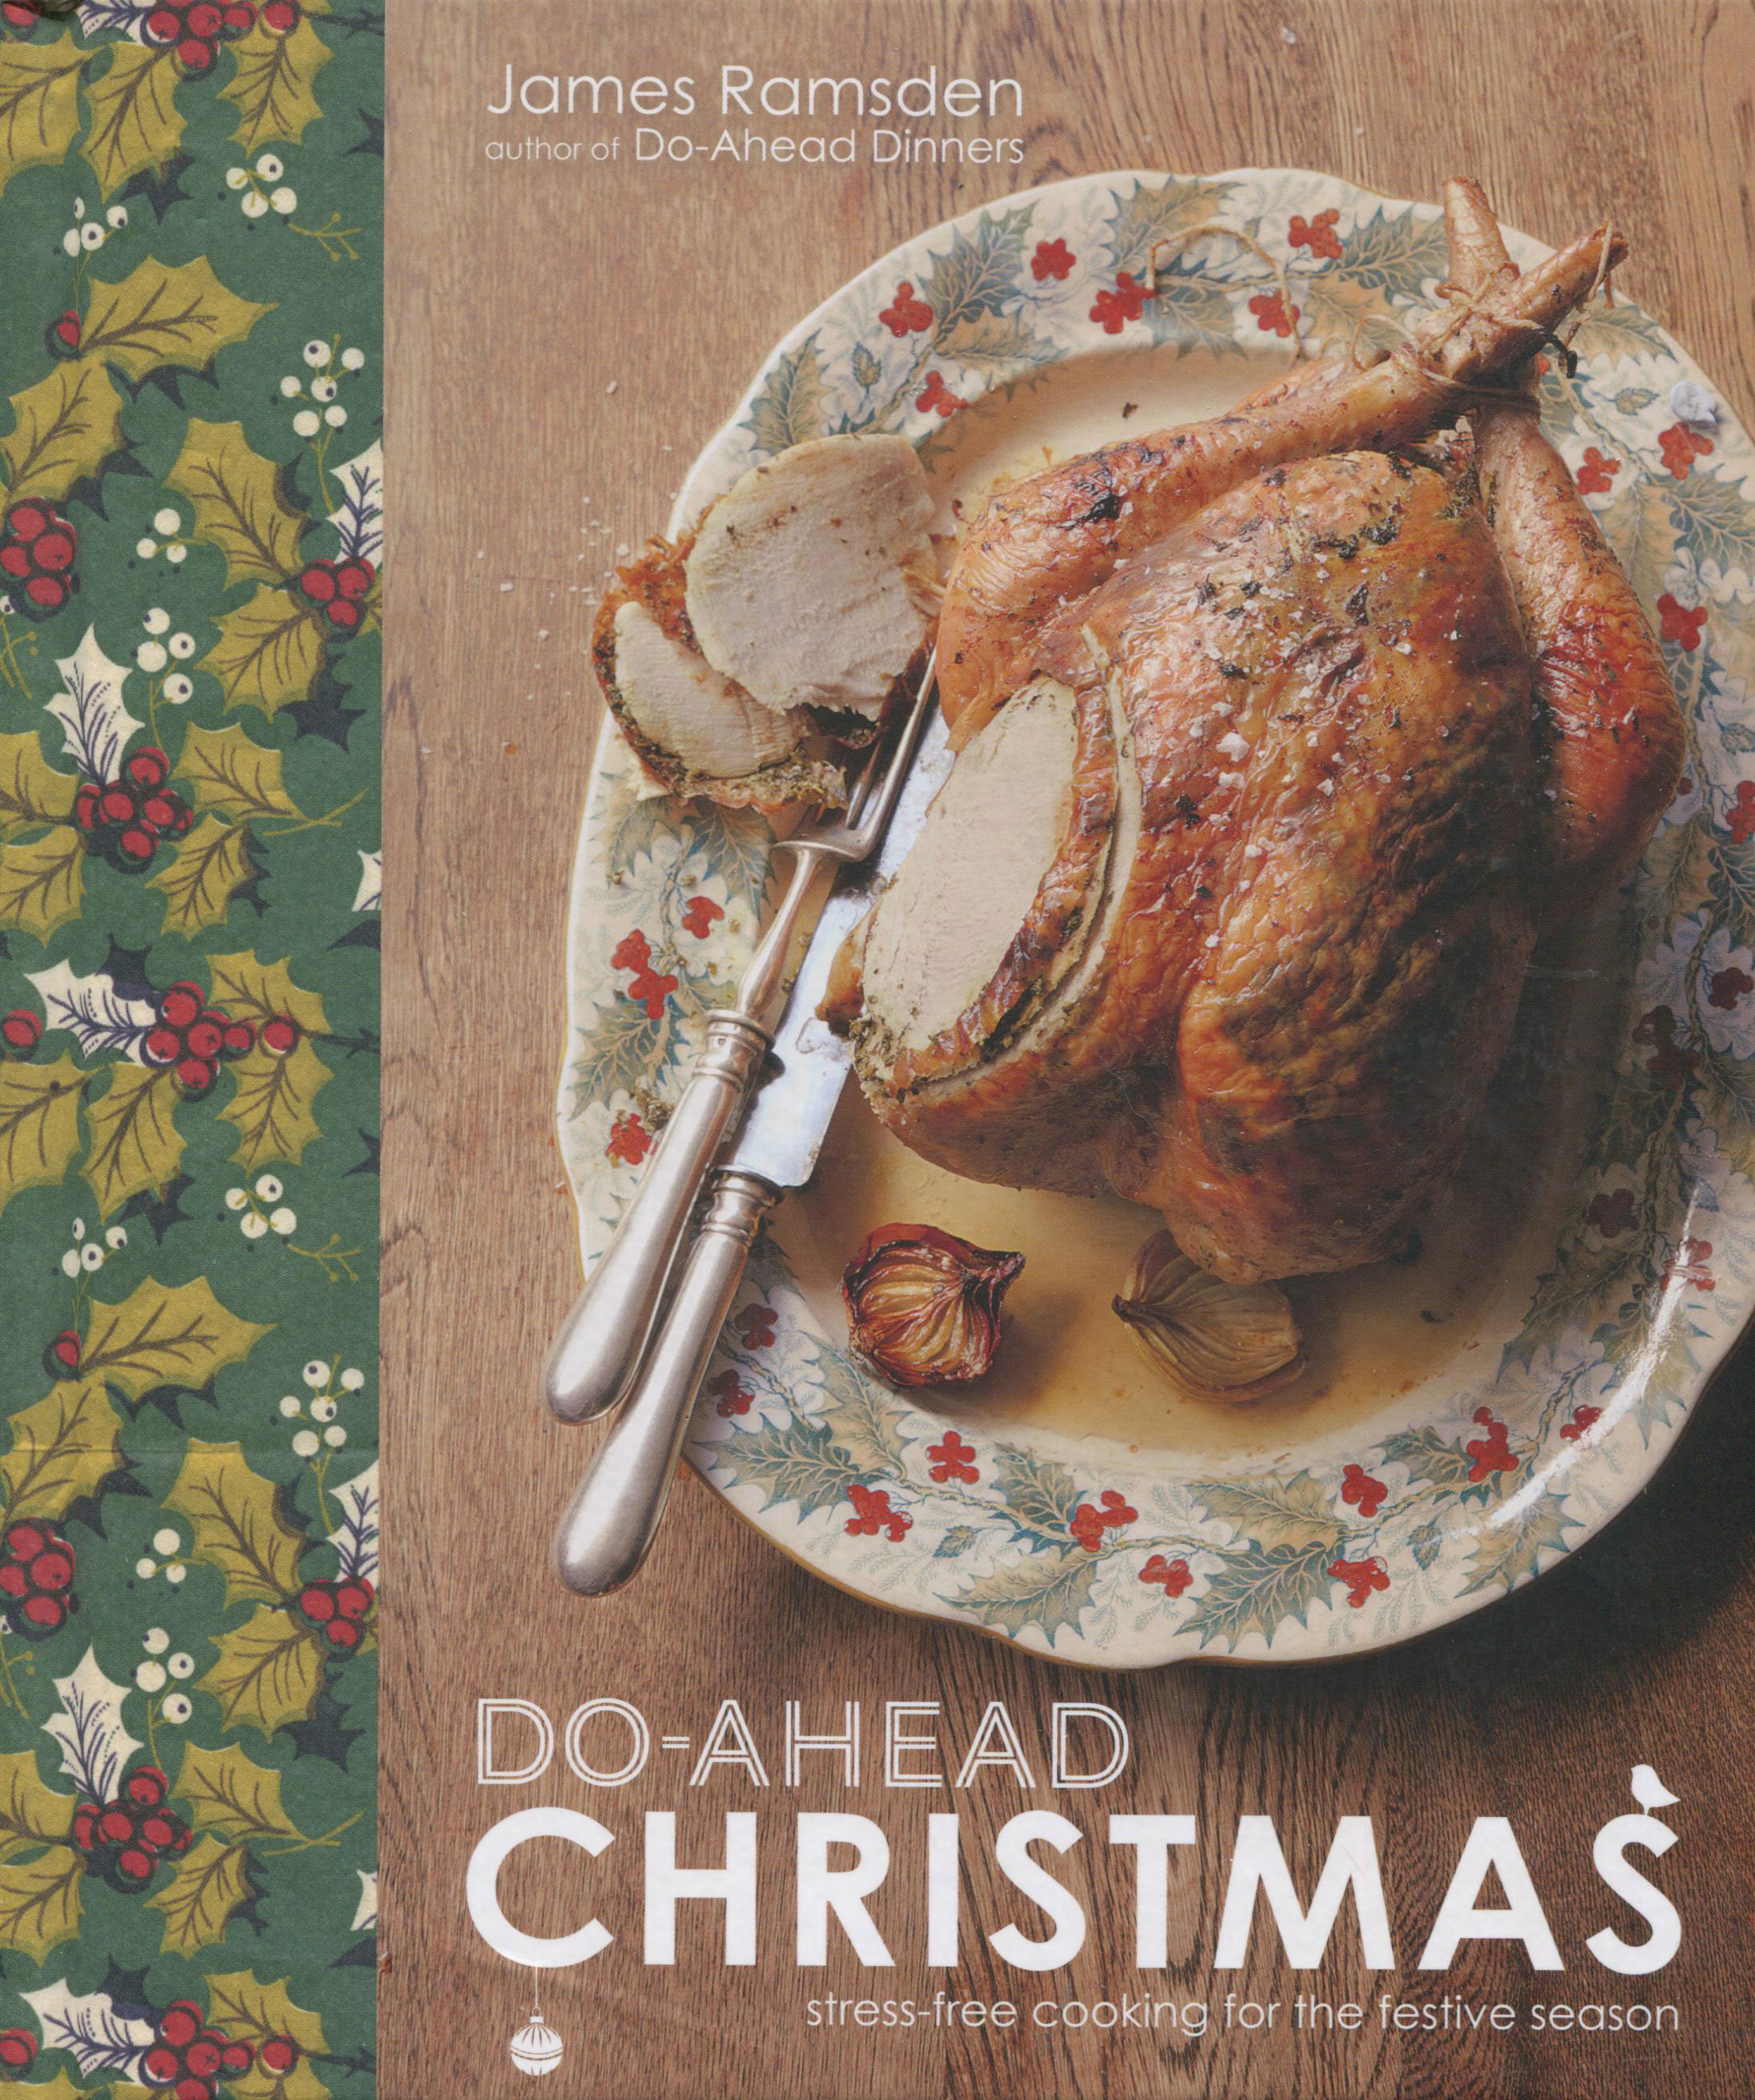 TBT Cookbook Review: Do-Ahead Christmas